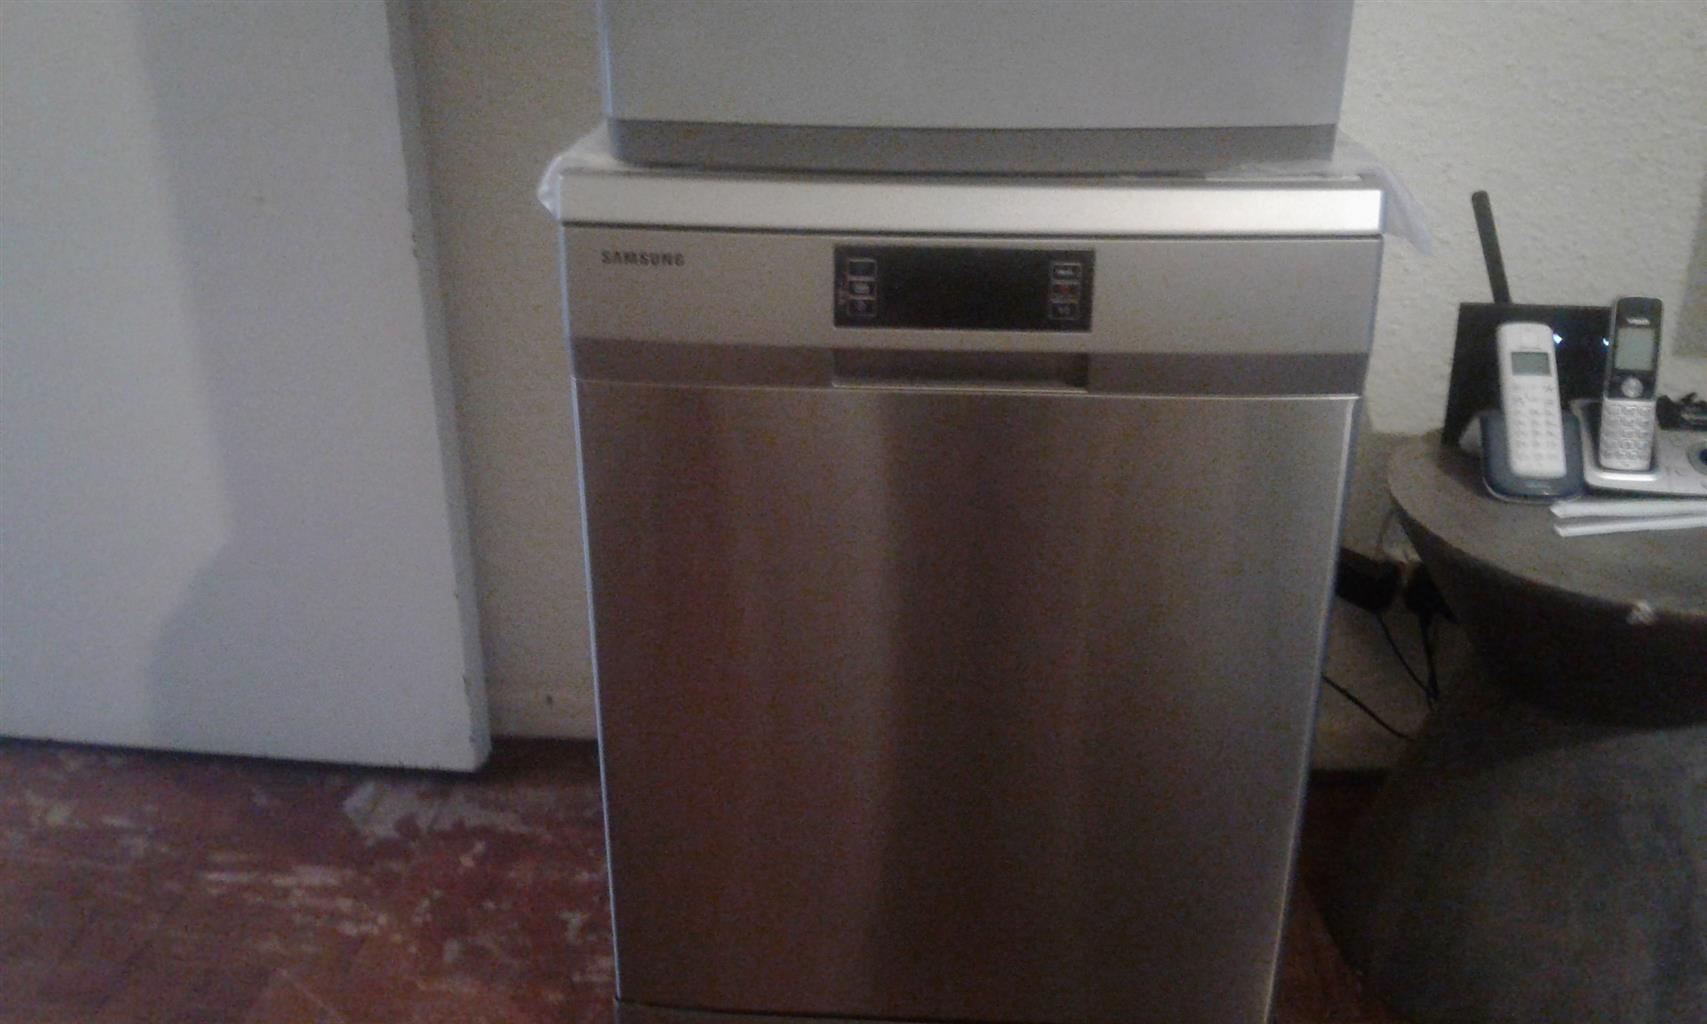 New Demo Samsung DW-FN320T 12 Place Dishwasher